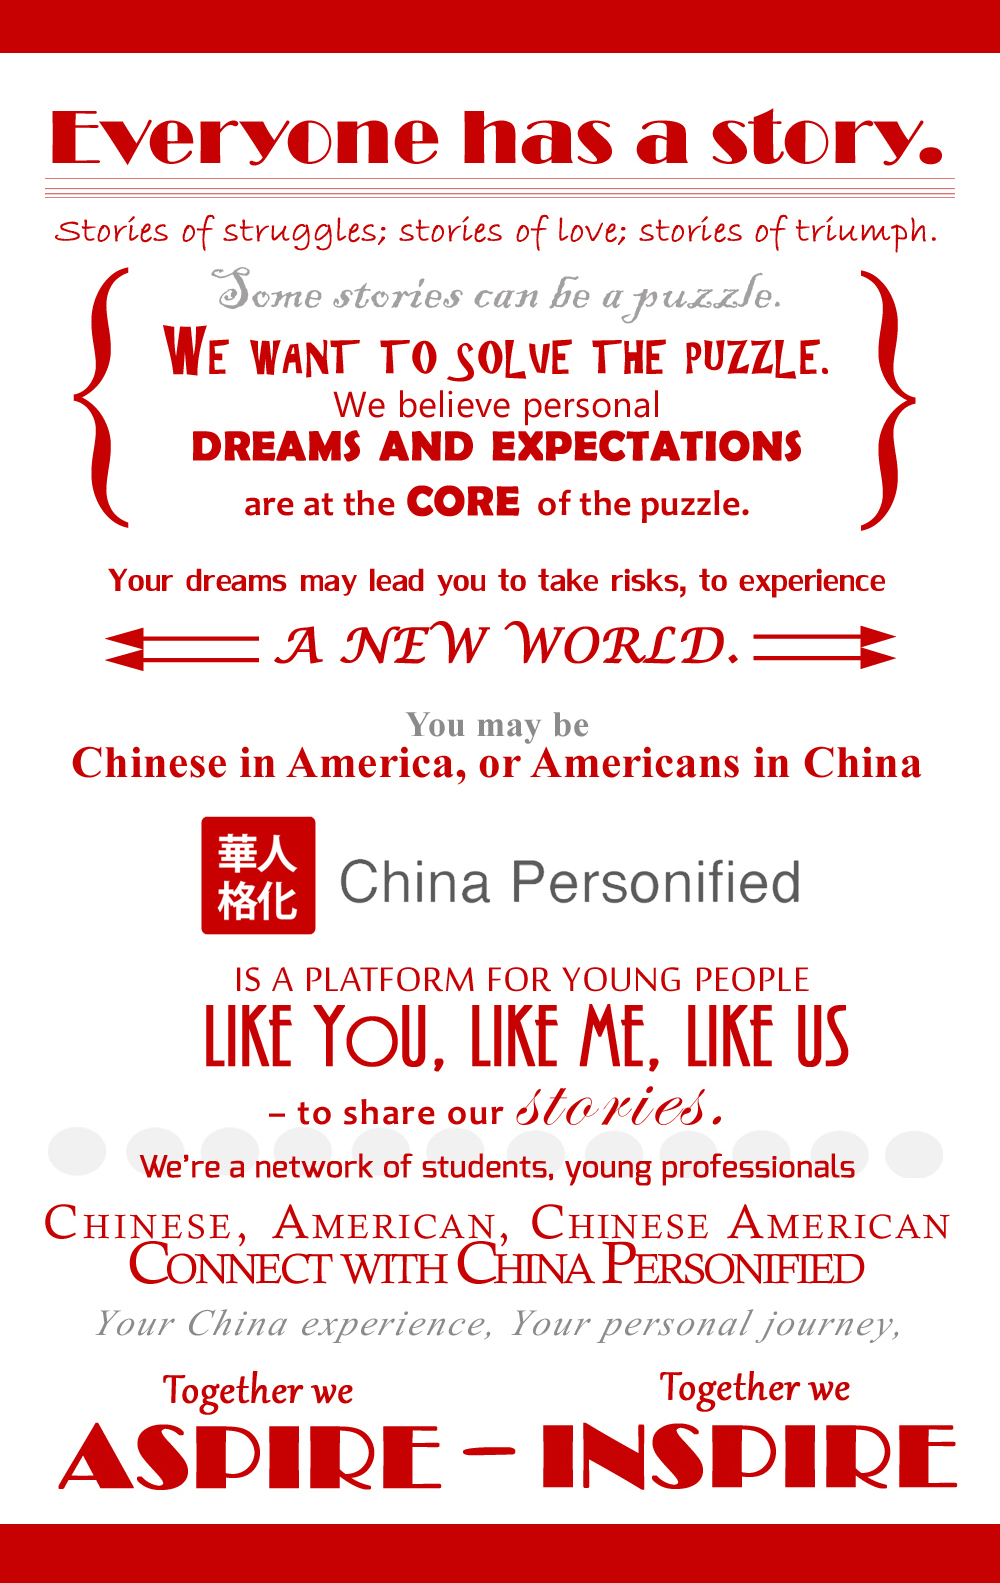 China Personified Vision